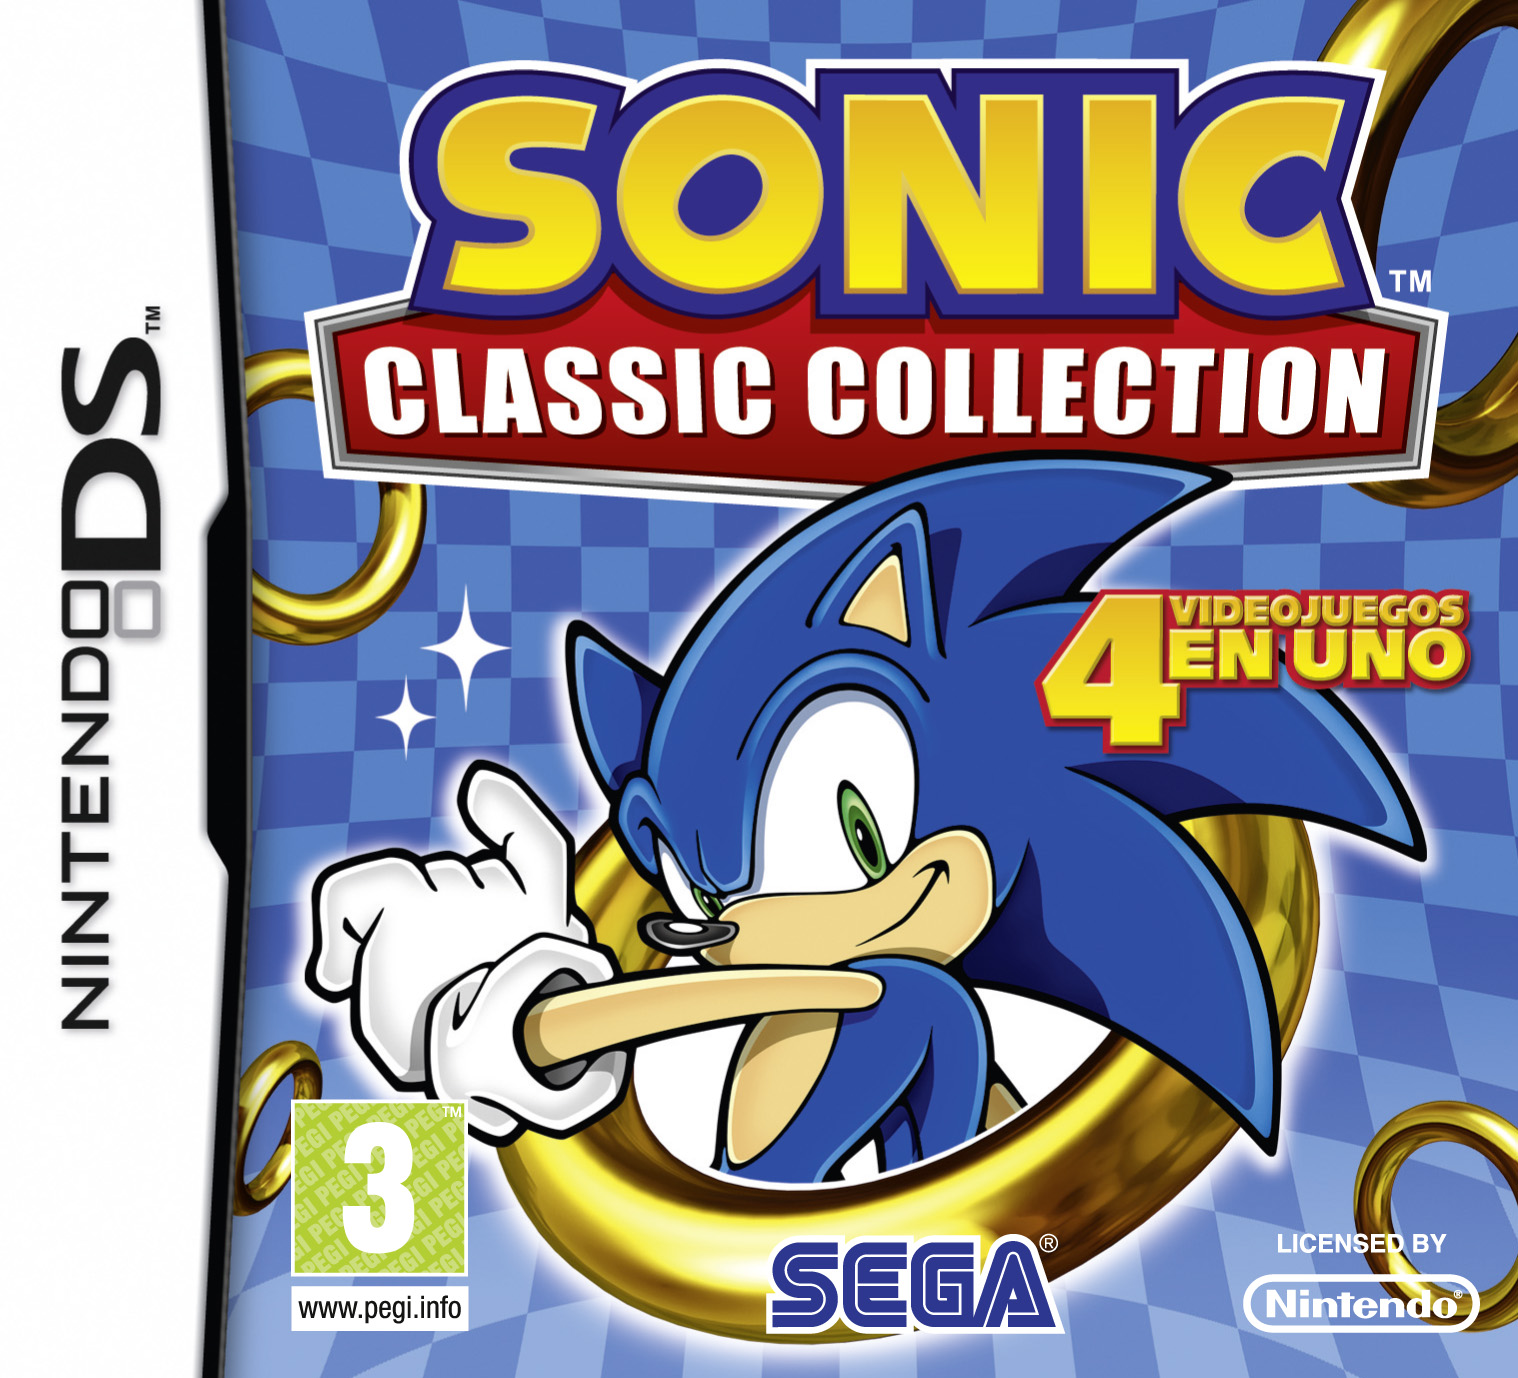 Sonic Classic Collection - Spanish Packshot